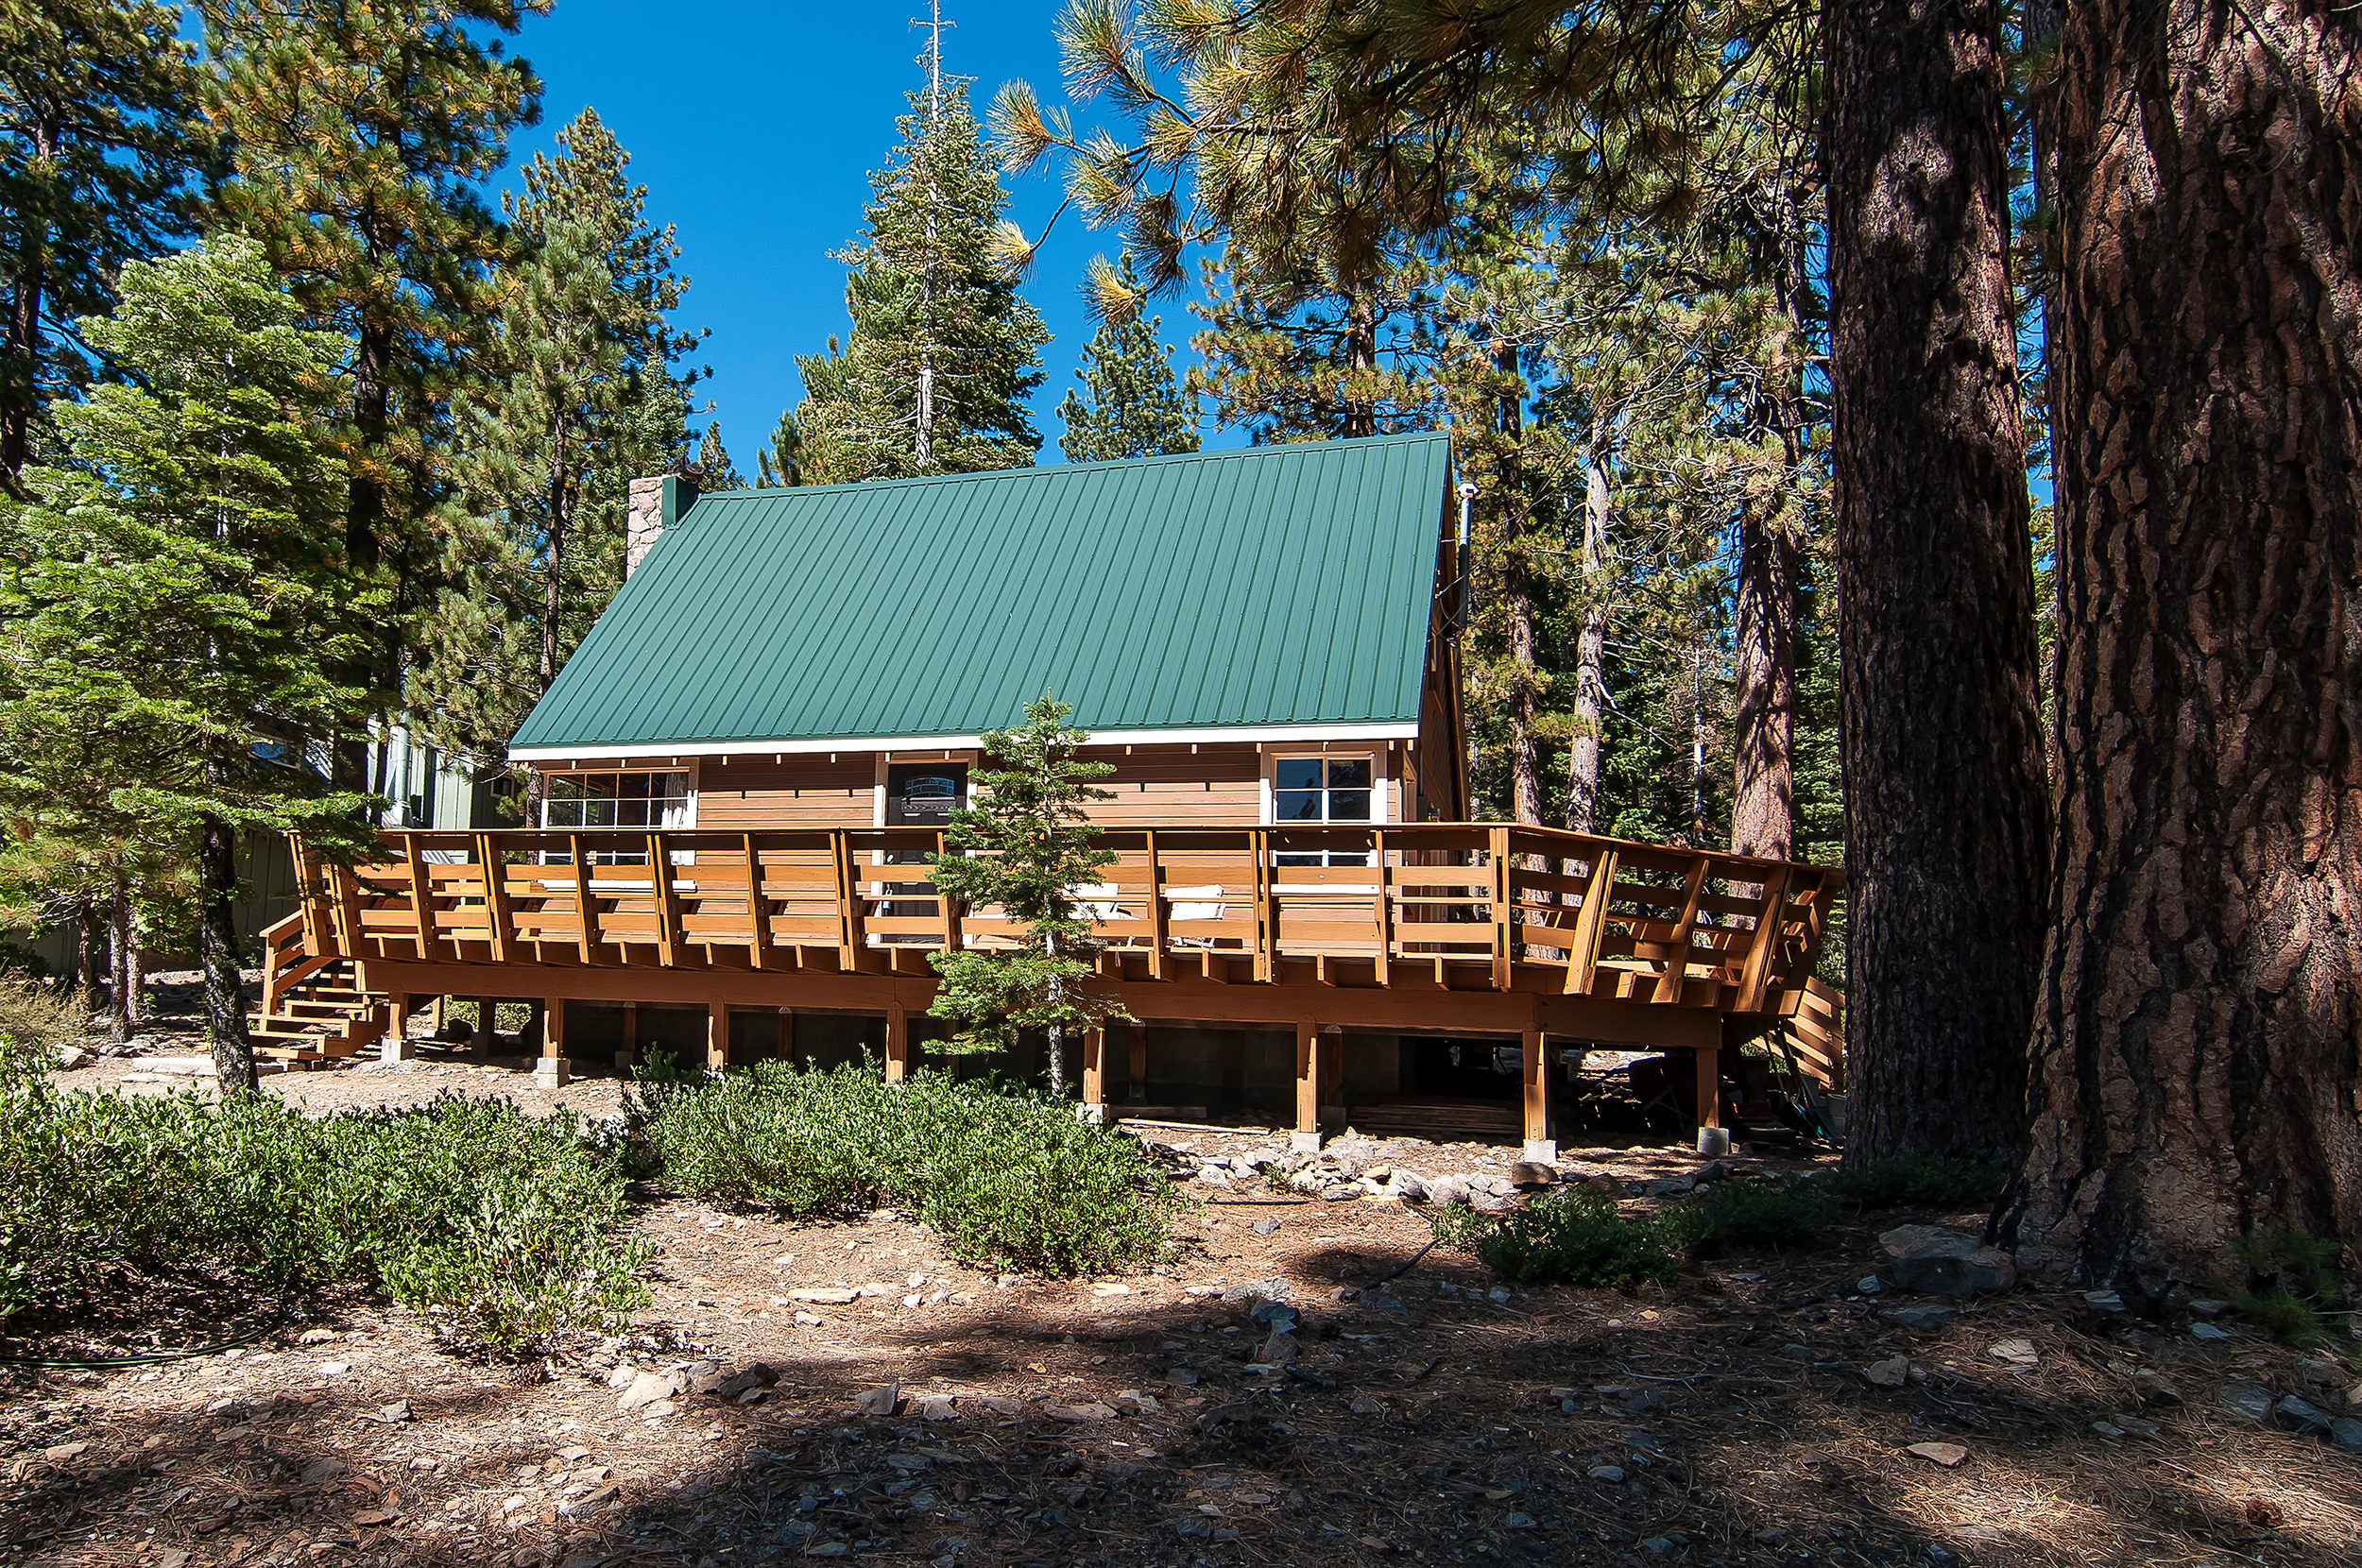 cabins lake masterdeck laketahoe her cabin travel edit in wonderland winter tahoe